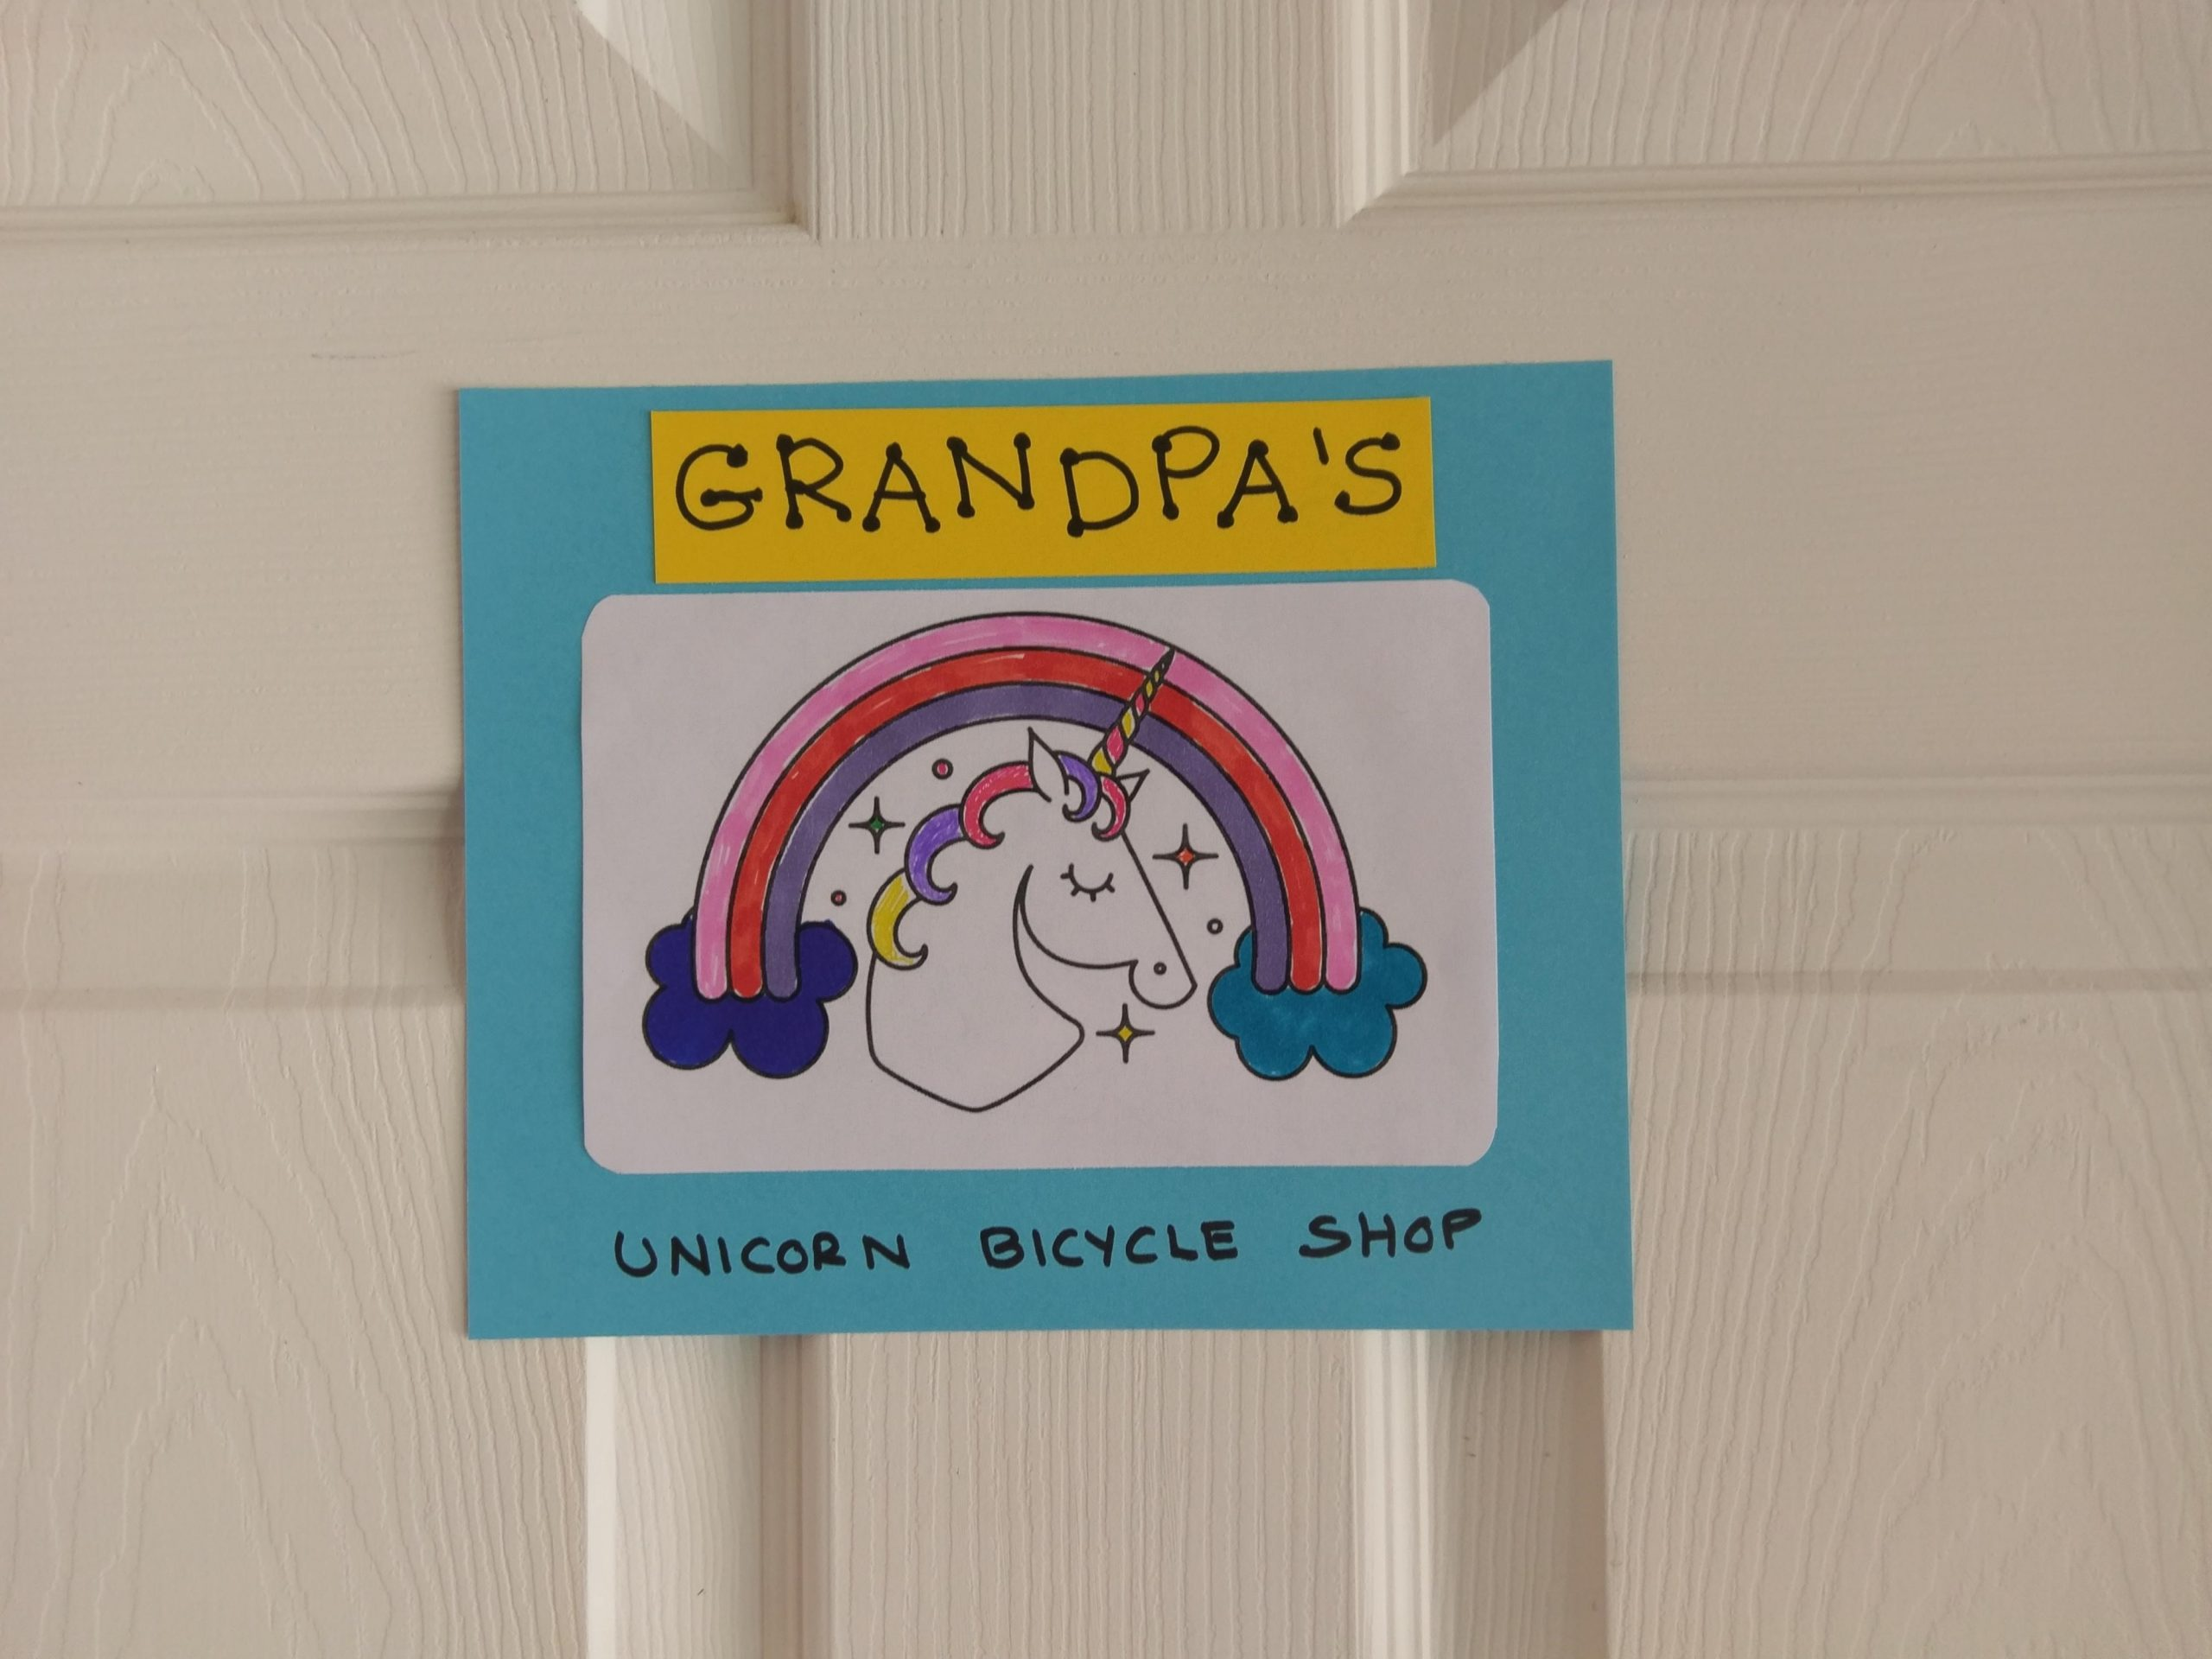 Sign for Grandpa's Unicorn Bicycle Shop